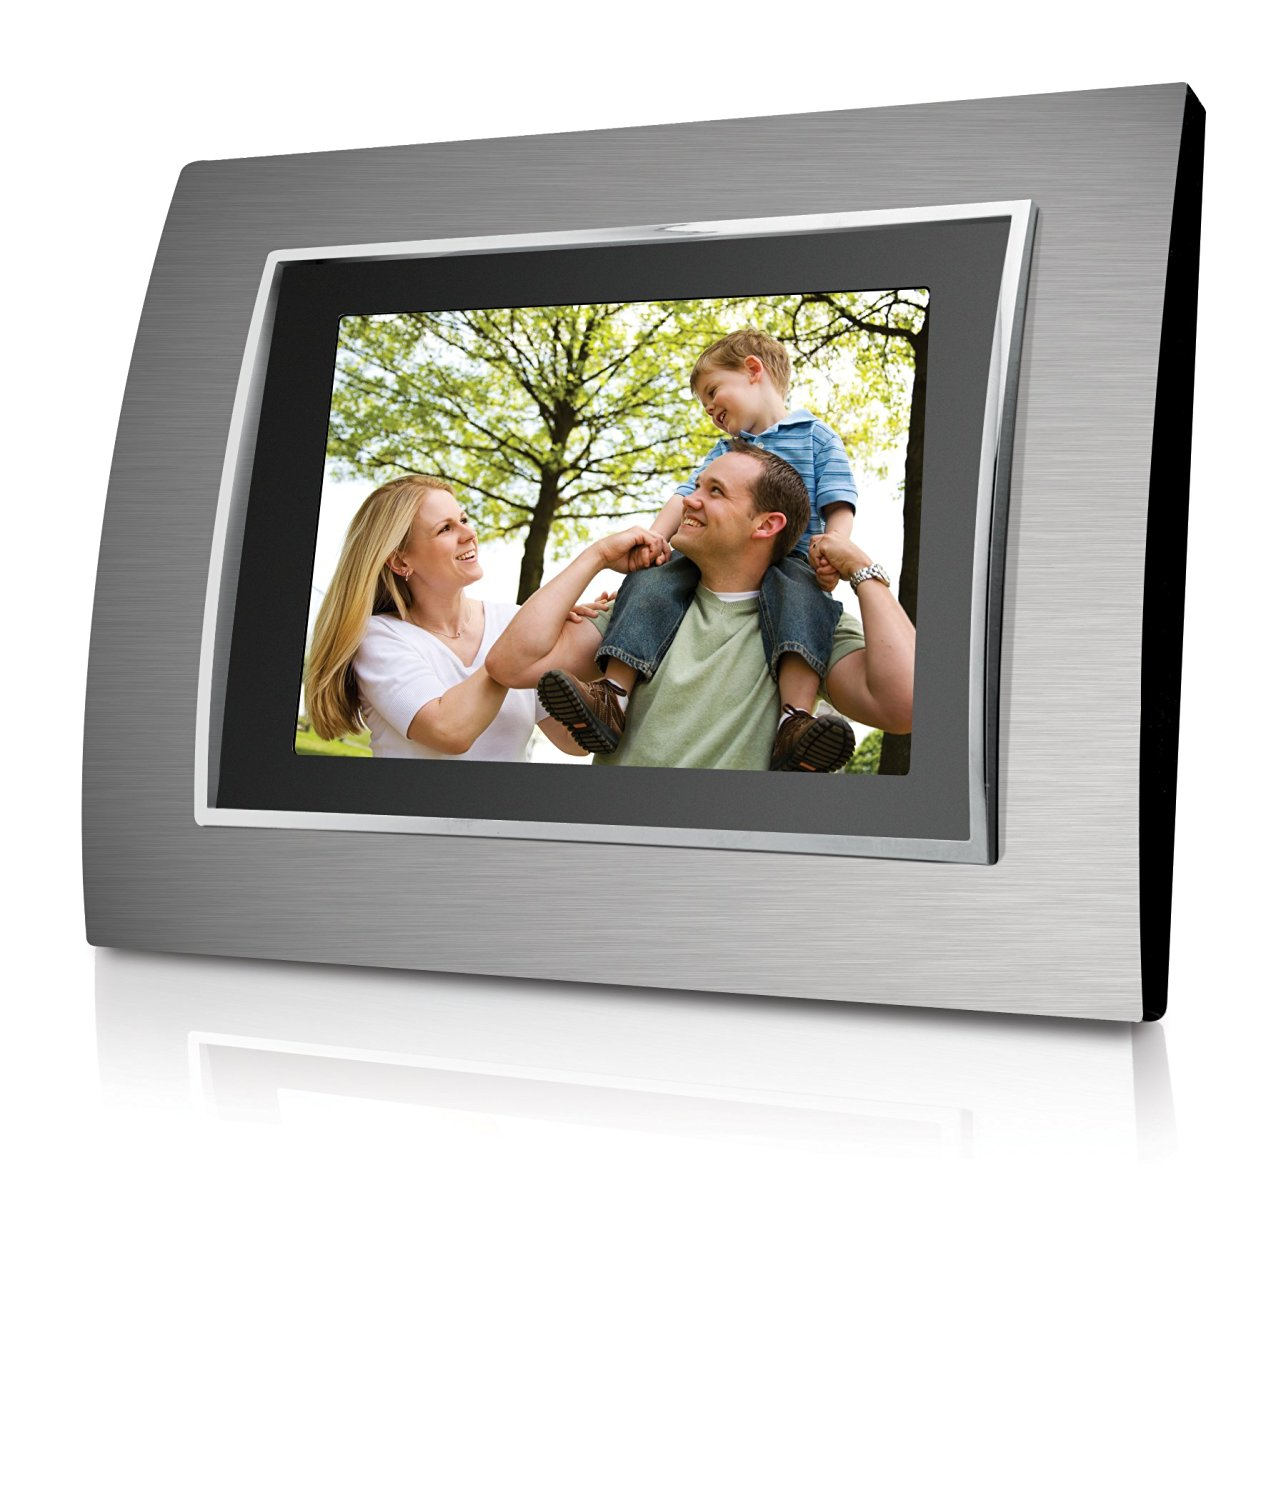 Cheap Coby Digital Photo Frame 7, find Coby Digital Photo Frame 7 ...